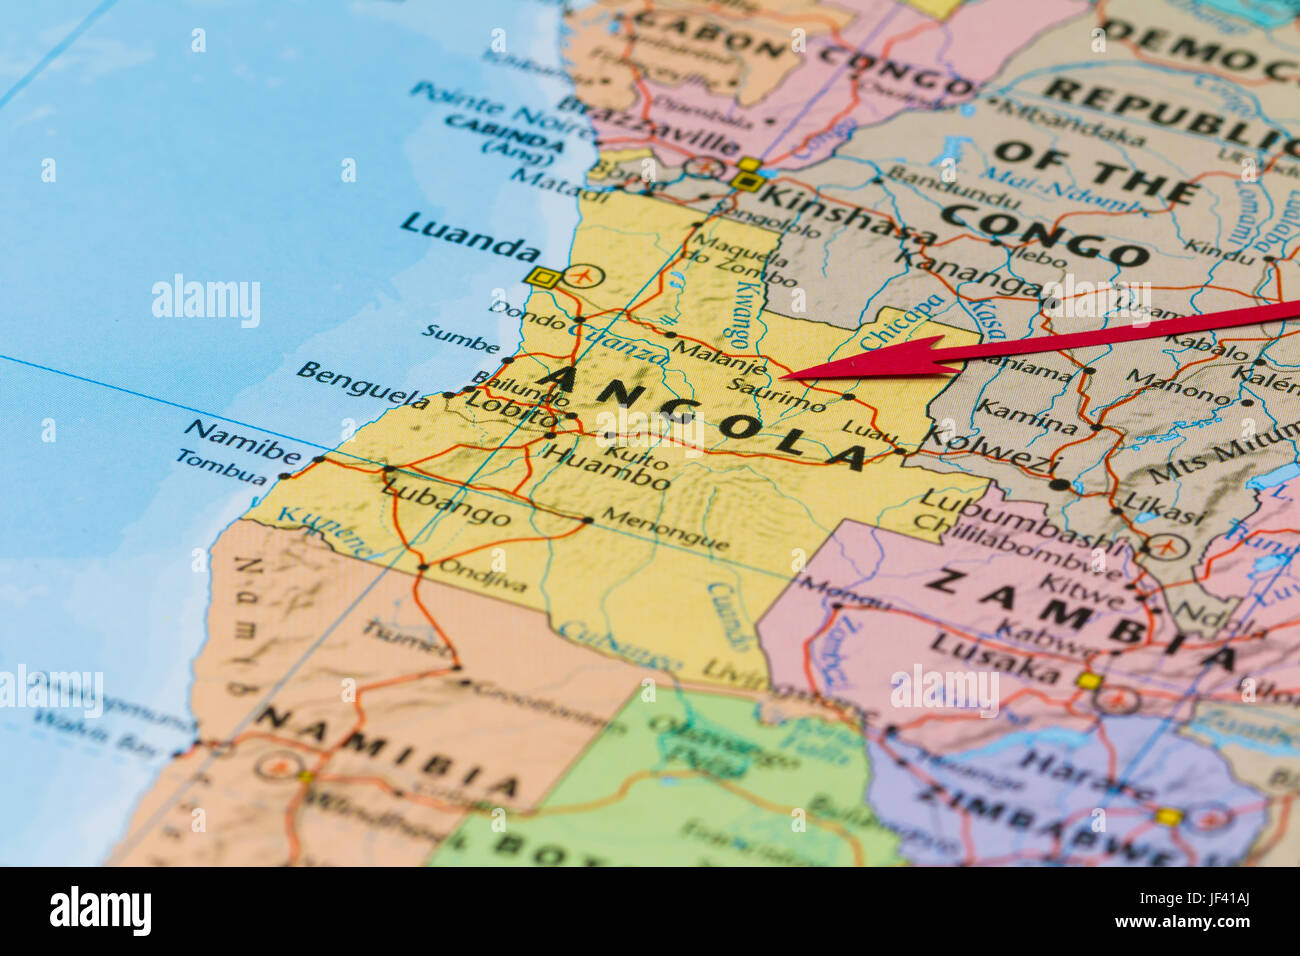 Photo of Angola. Country indicated by red arrow. Country on African continent. Stock Photo